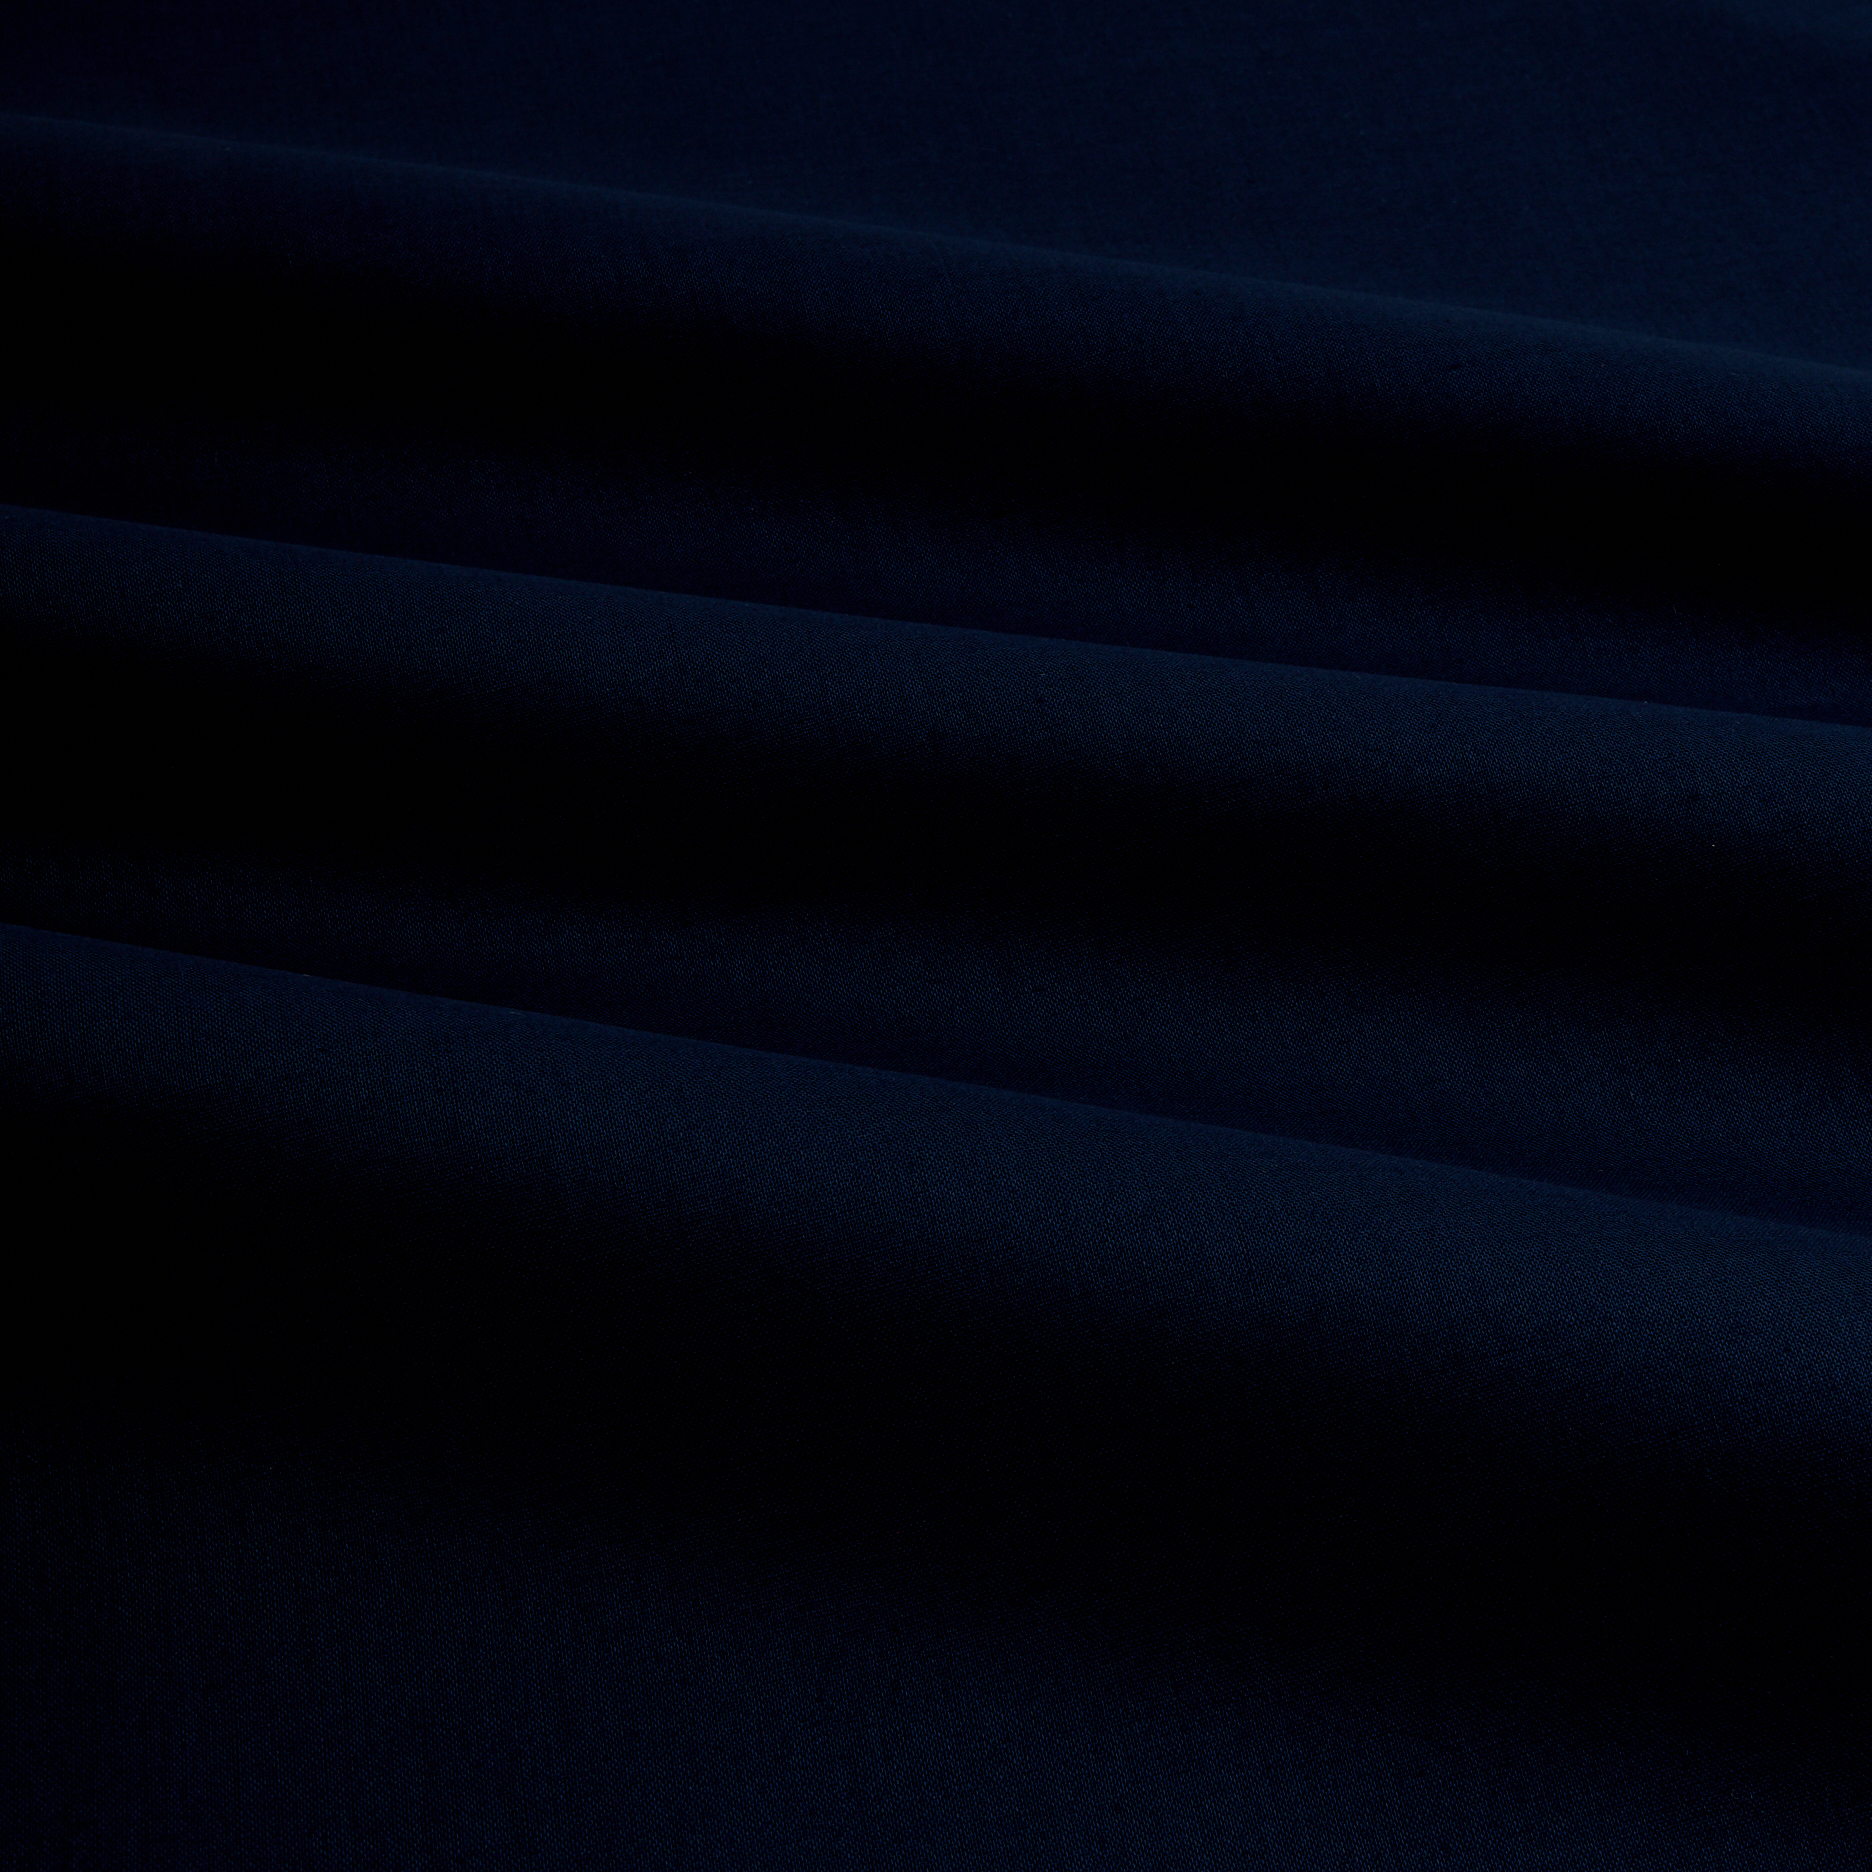 Cotton Broadcloth Navy Fabric